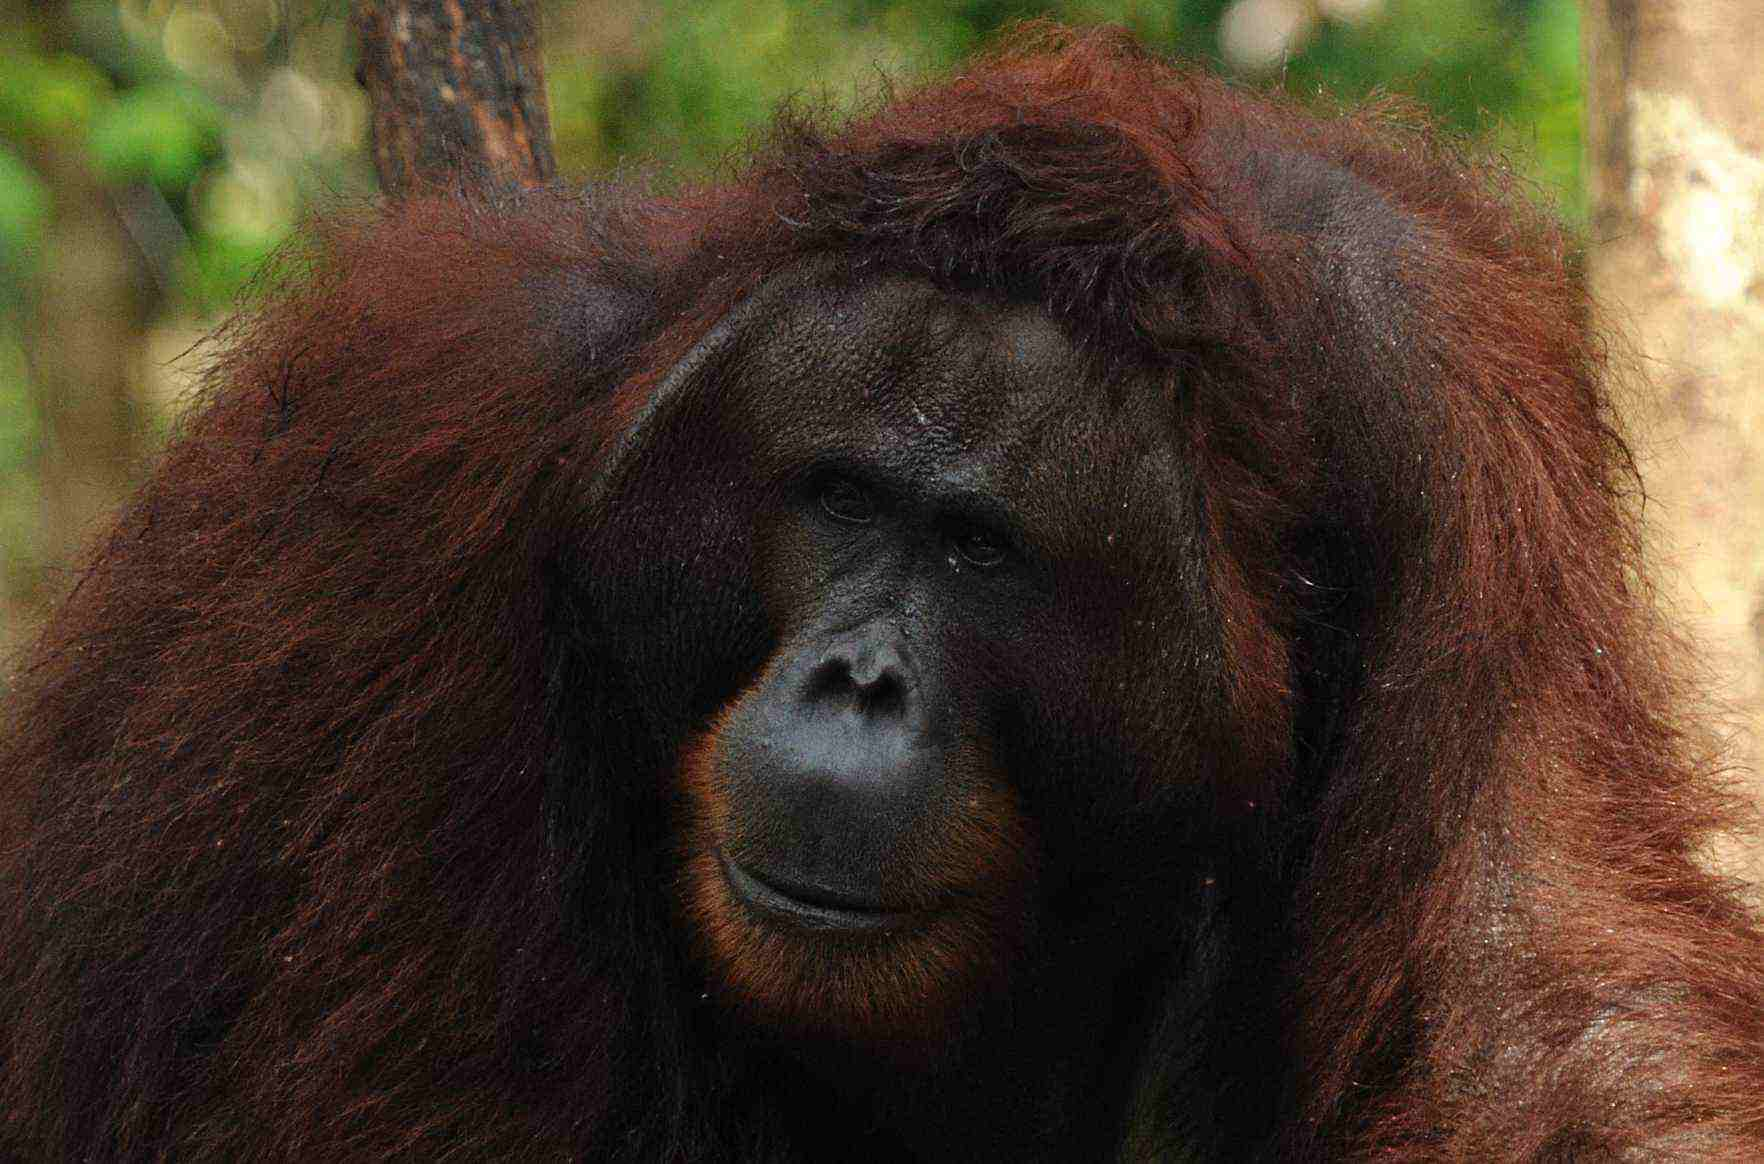 kutai park orangutan rain forest borneo kalimantan jungle tour guide trip adventure